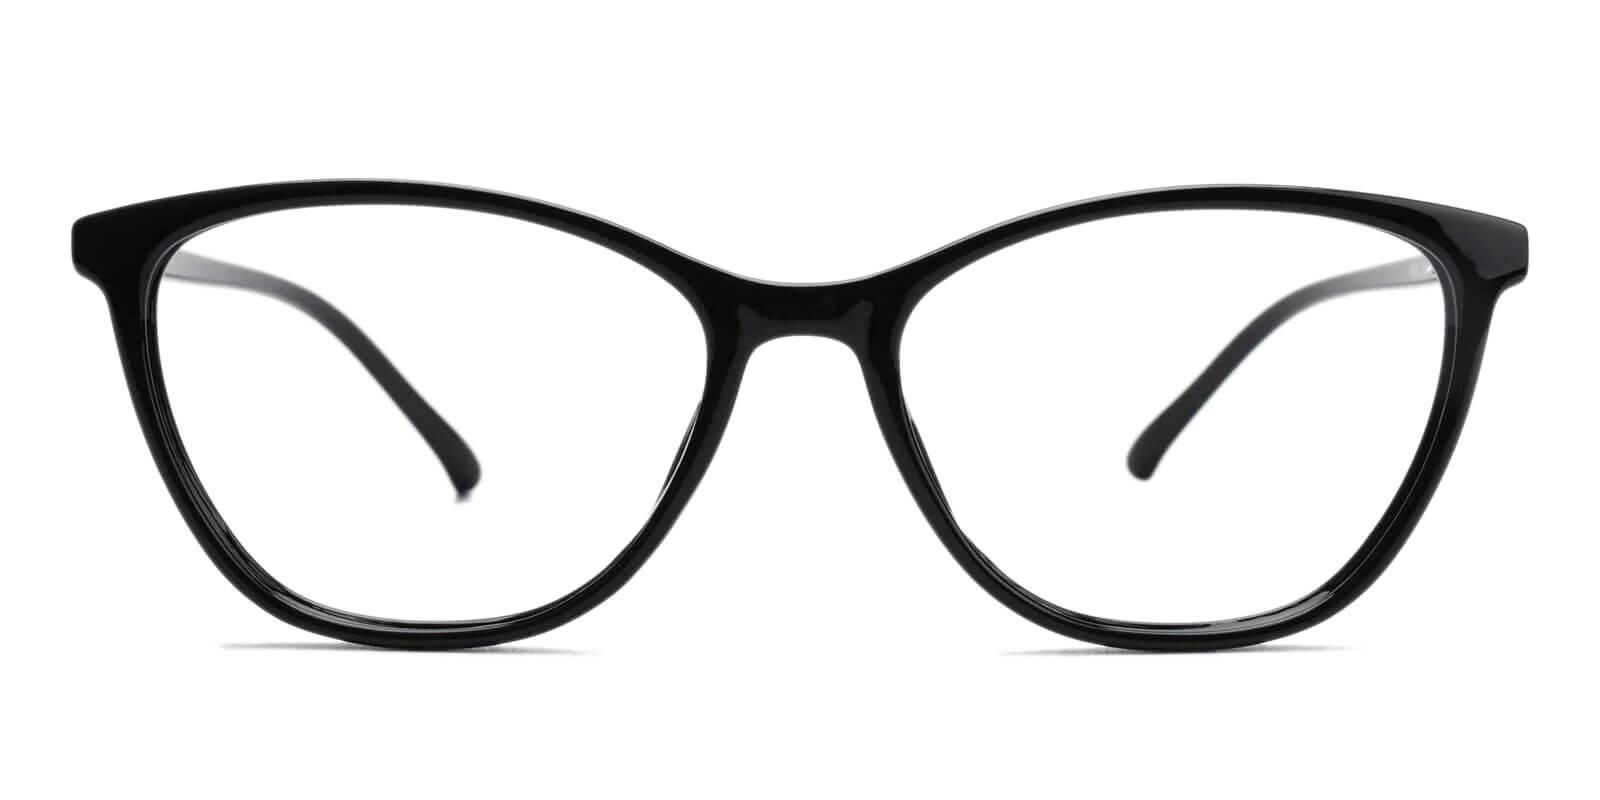 Percy Black TR Eyeglasses , Lightweight , UniversalBridgeFit Frames from ABBE Glasses